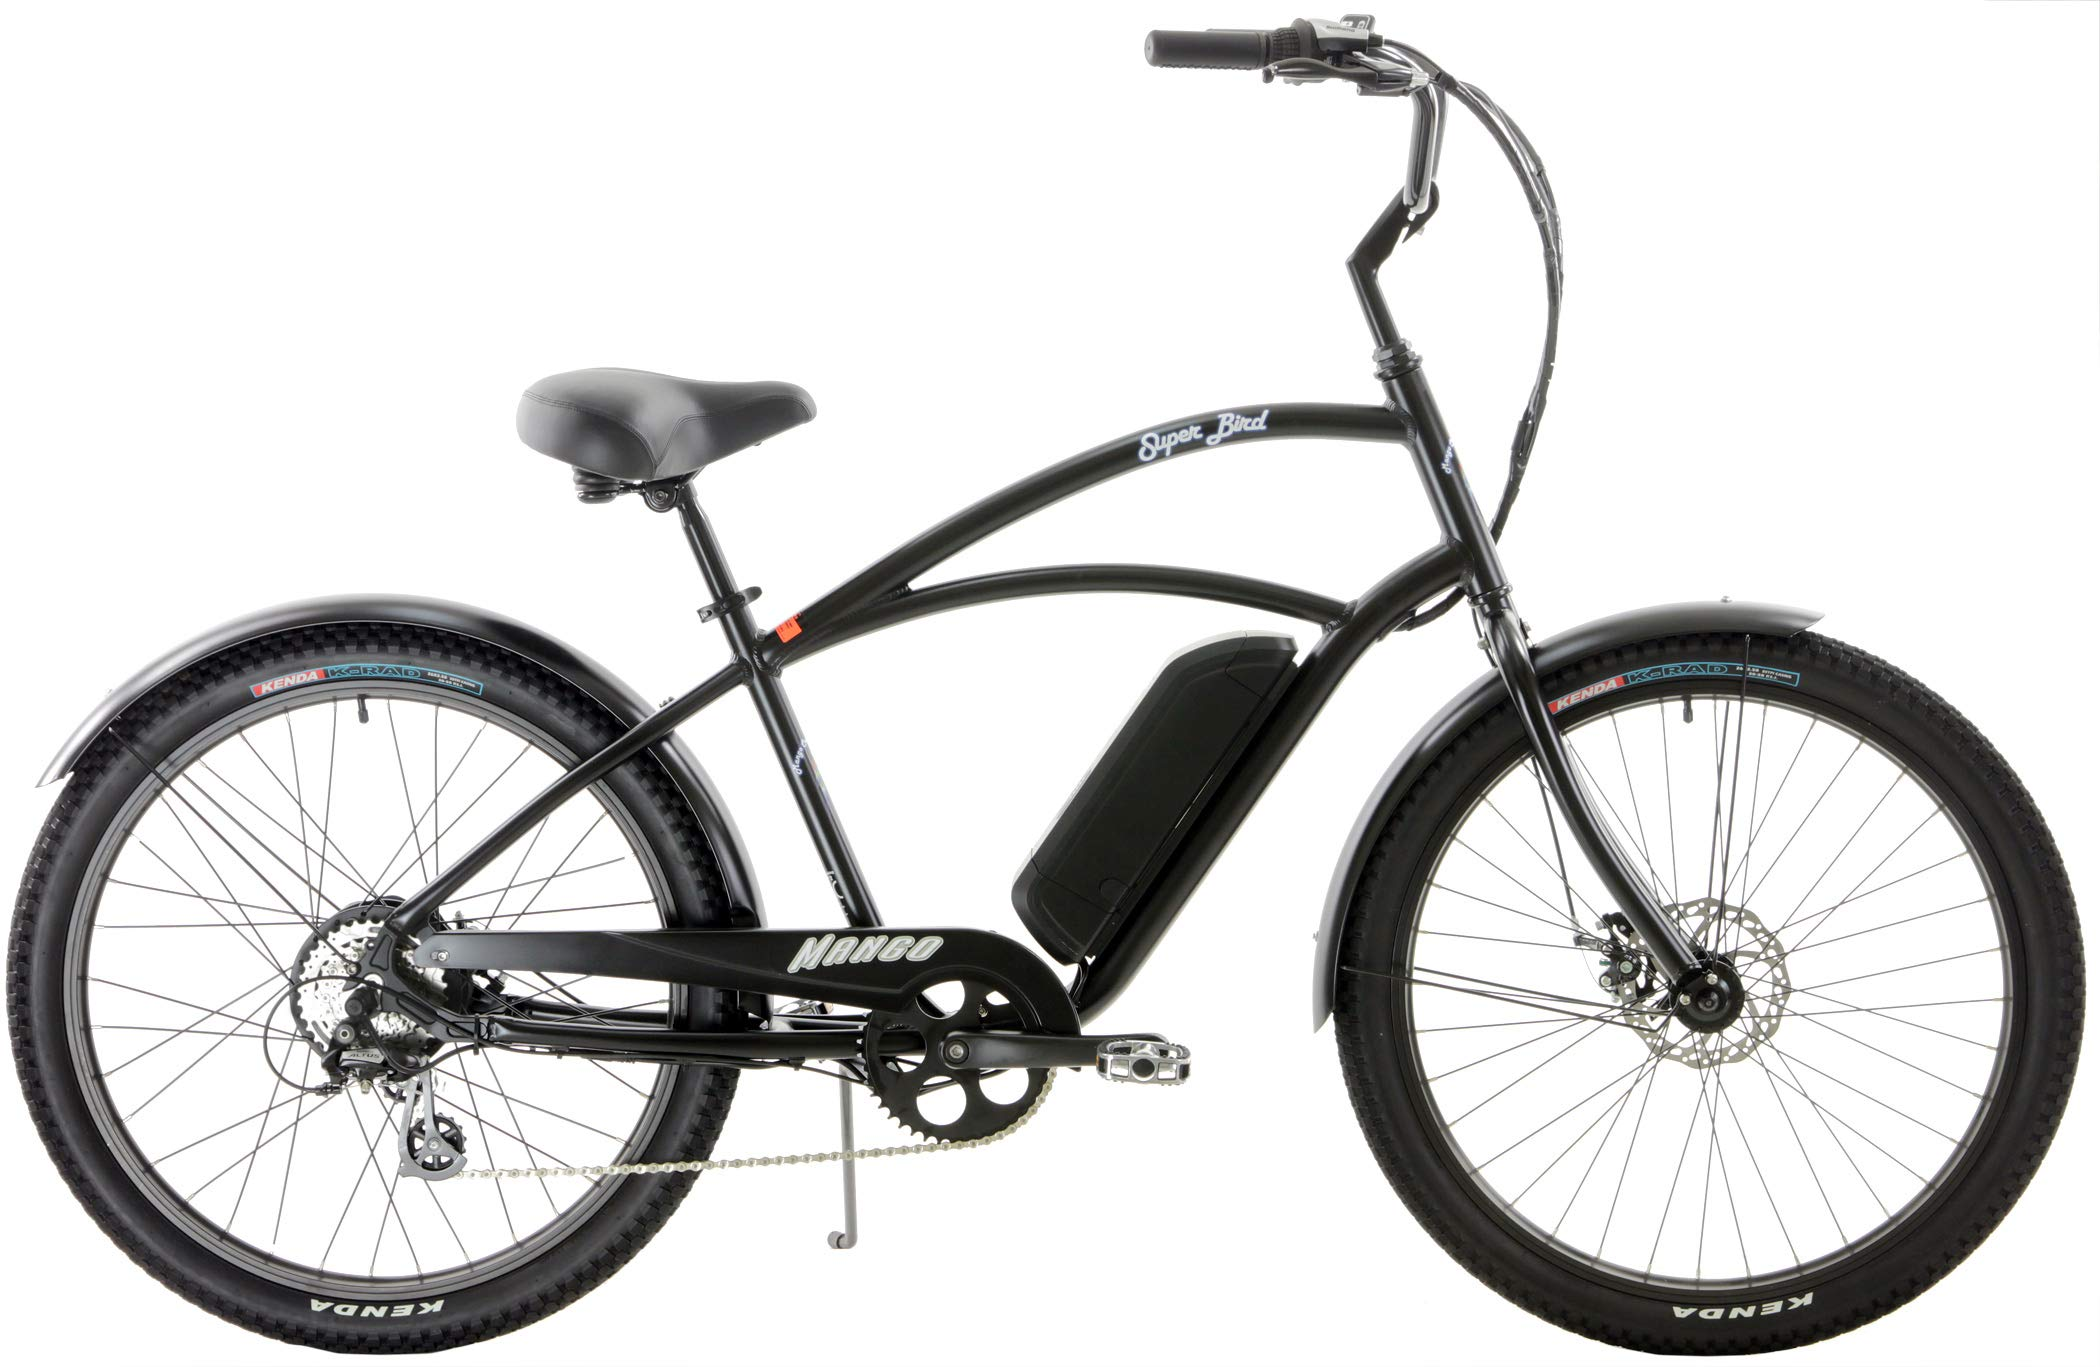 Quality Mango Superbird 8 Speed eBike Cruiser Aluminum 250w Electric Bicycle with Disc Brakes (Matt Black, Mens)